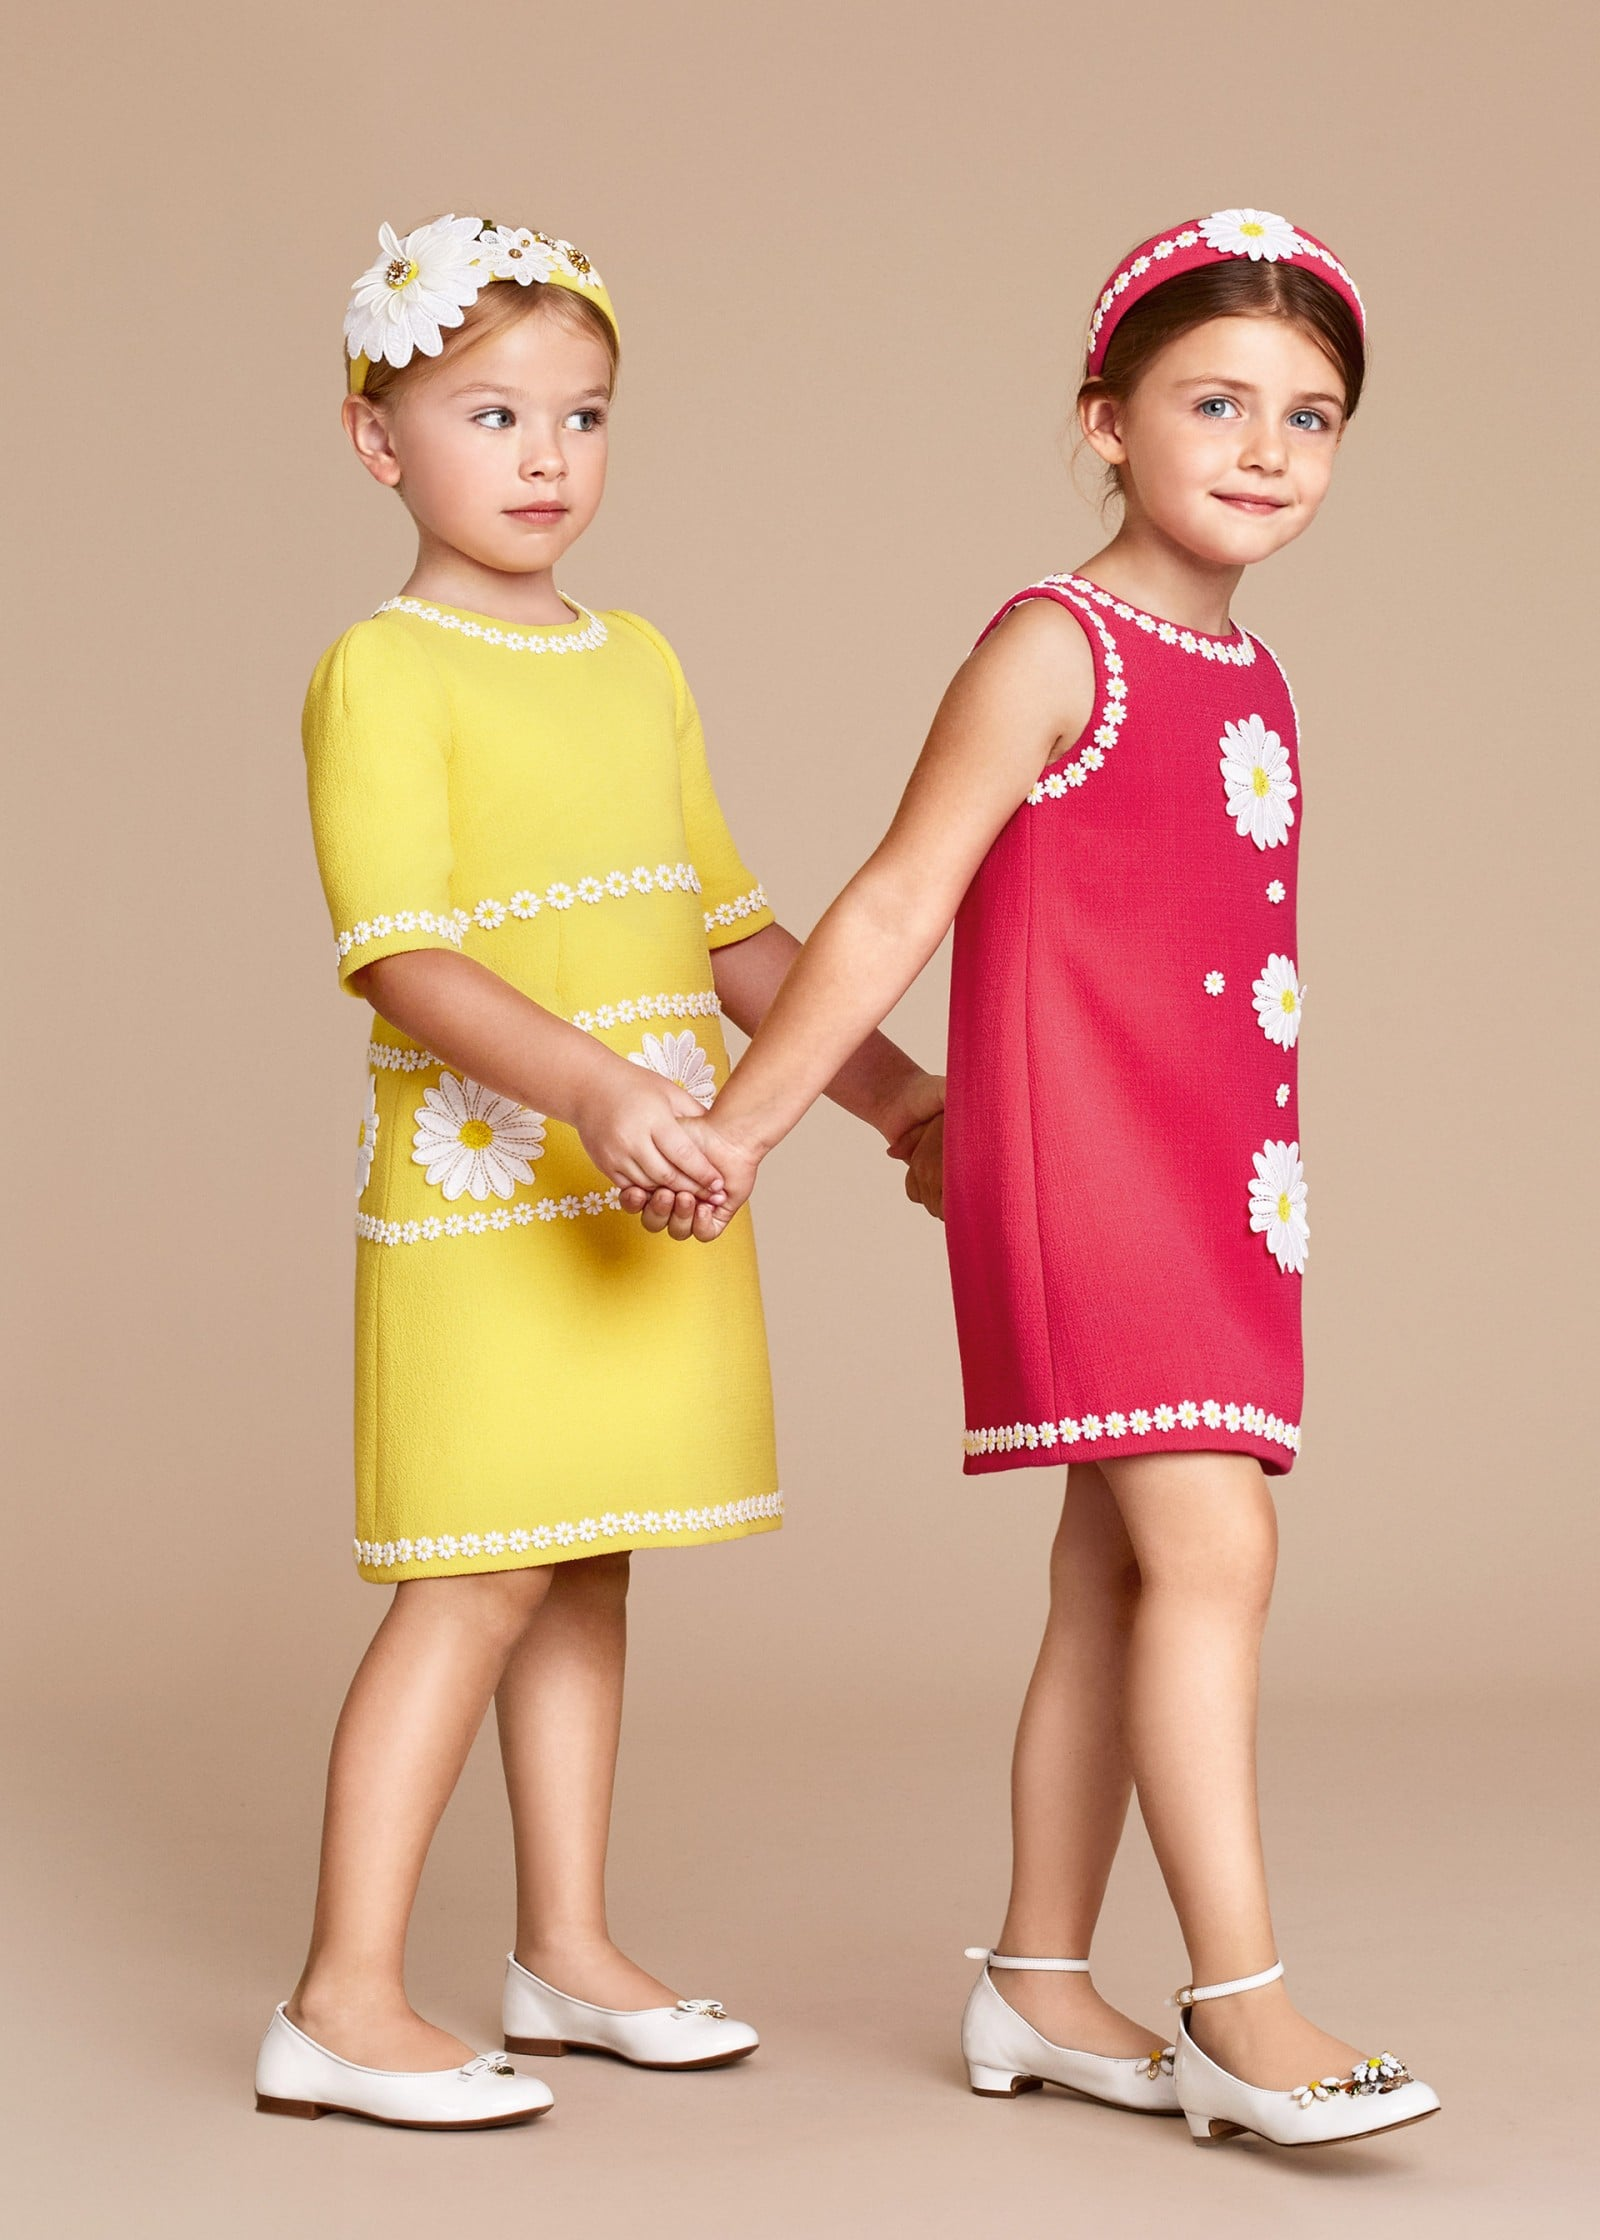 dolce-and-gabbana-summer-2016-child-collection-152-1600x2240.jpg